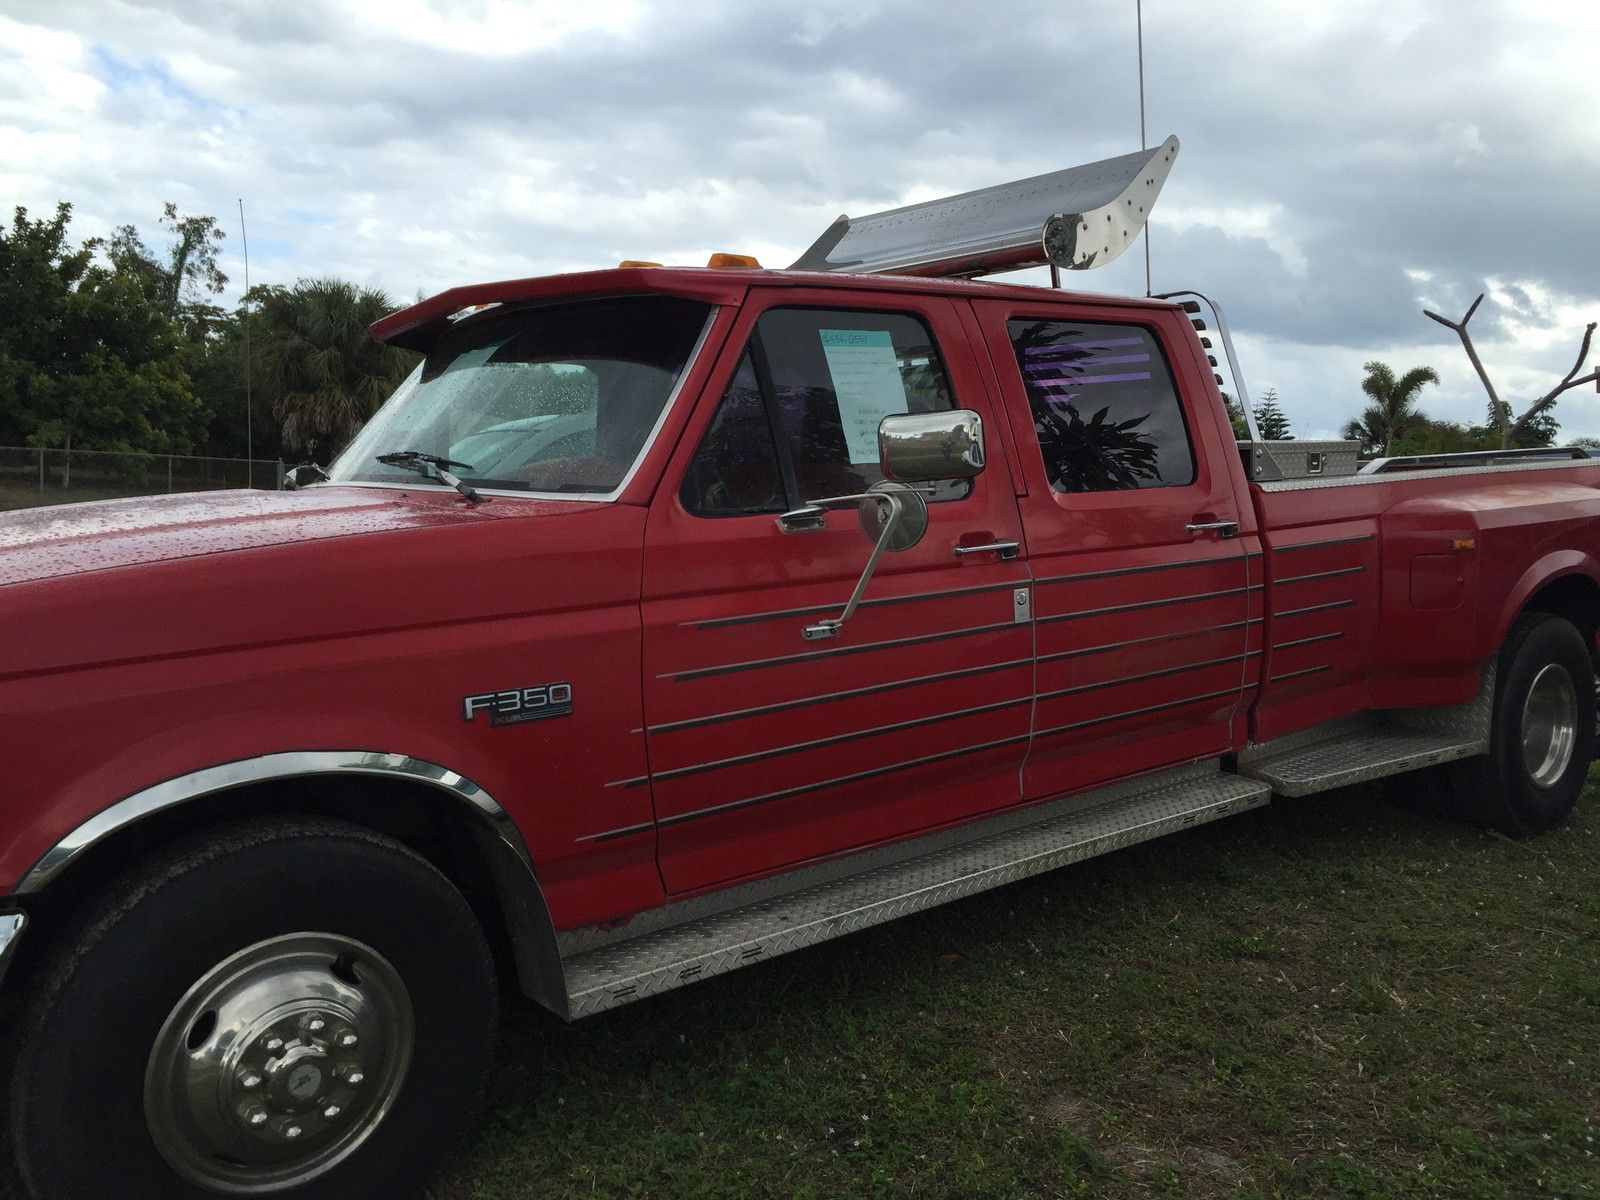 F350 Dually For Sale >> 1993 Ford F-350 Dually 7.5 for sale in West Palm Beach ...